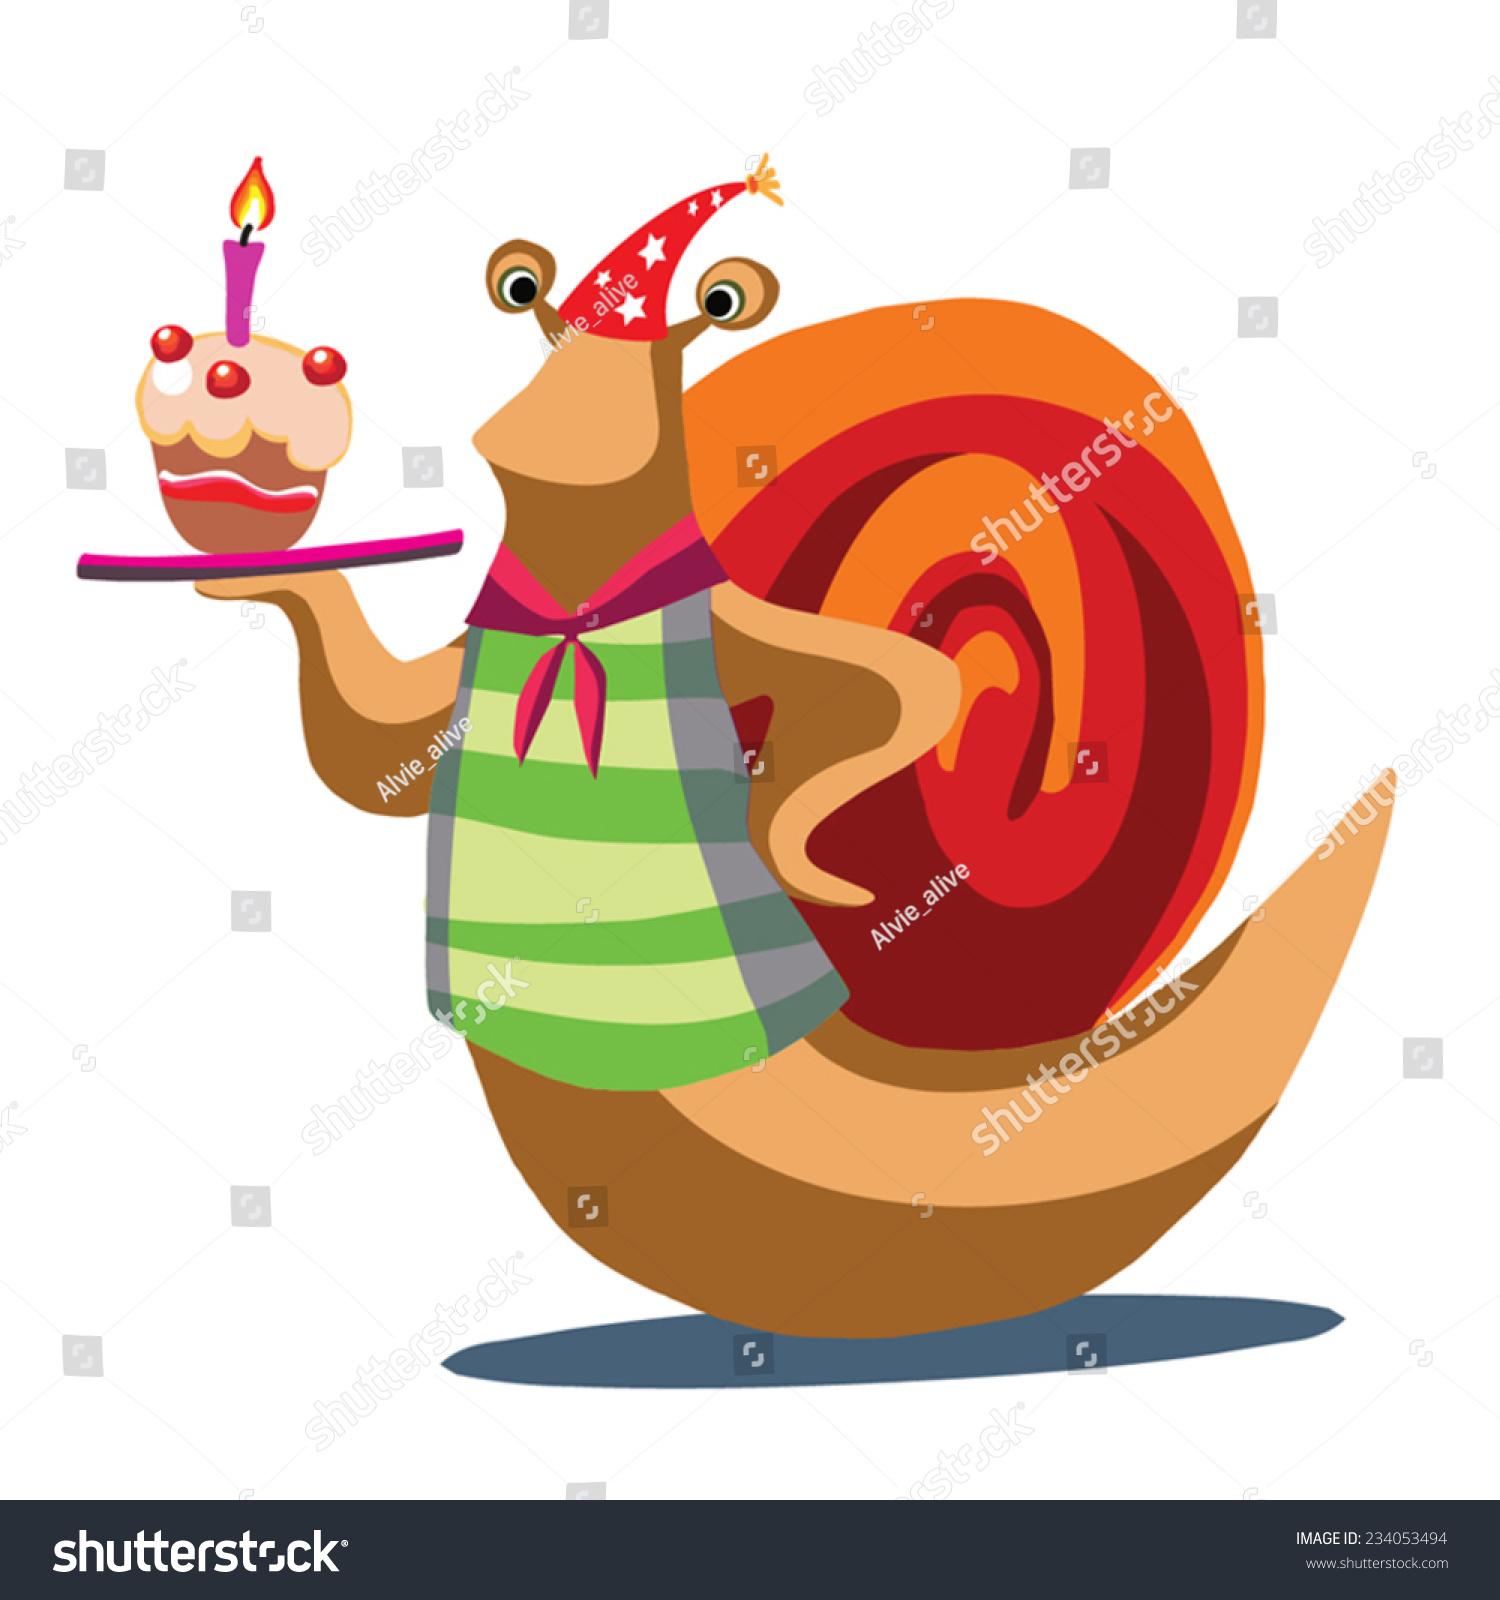 Birthday Greeting Illustration Cute Snail Party Stock Vector